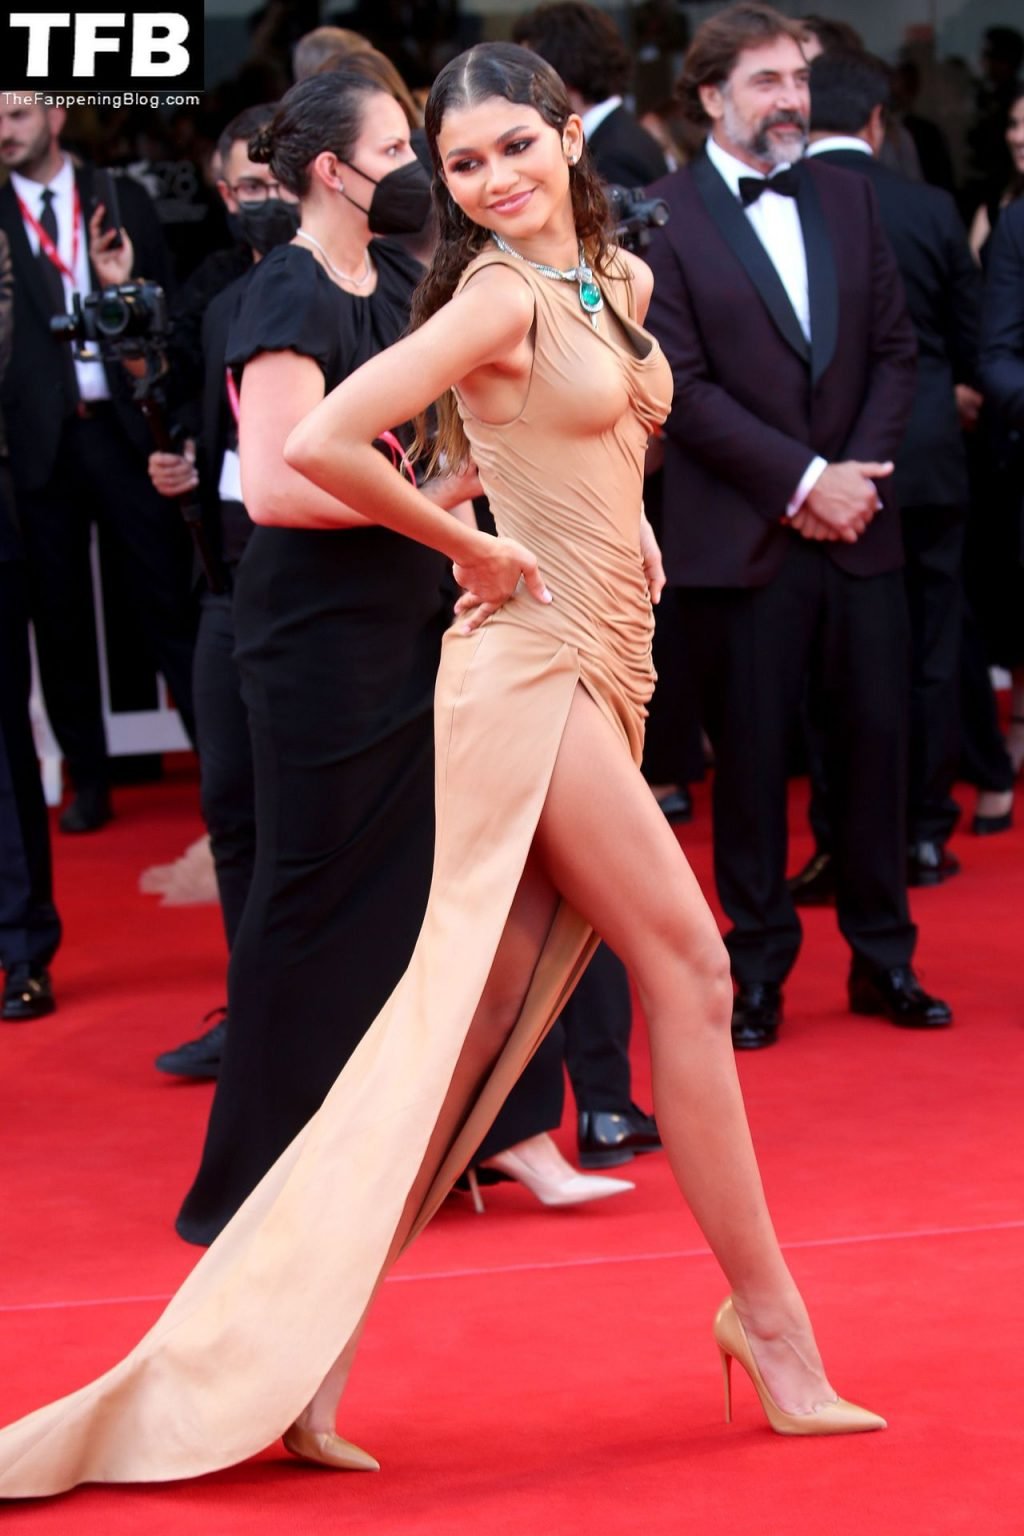 Leggy Zendaya Joins On-Screen Lover Timothée Chalamet on the Red Carpet in Venice (184 Photos) [Updated]